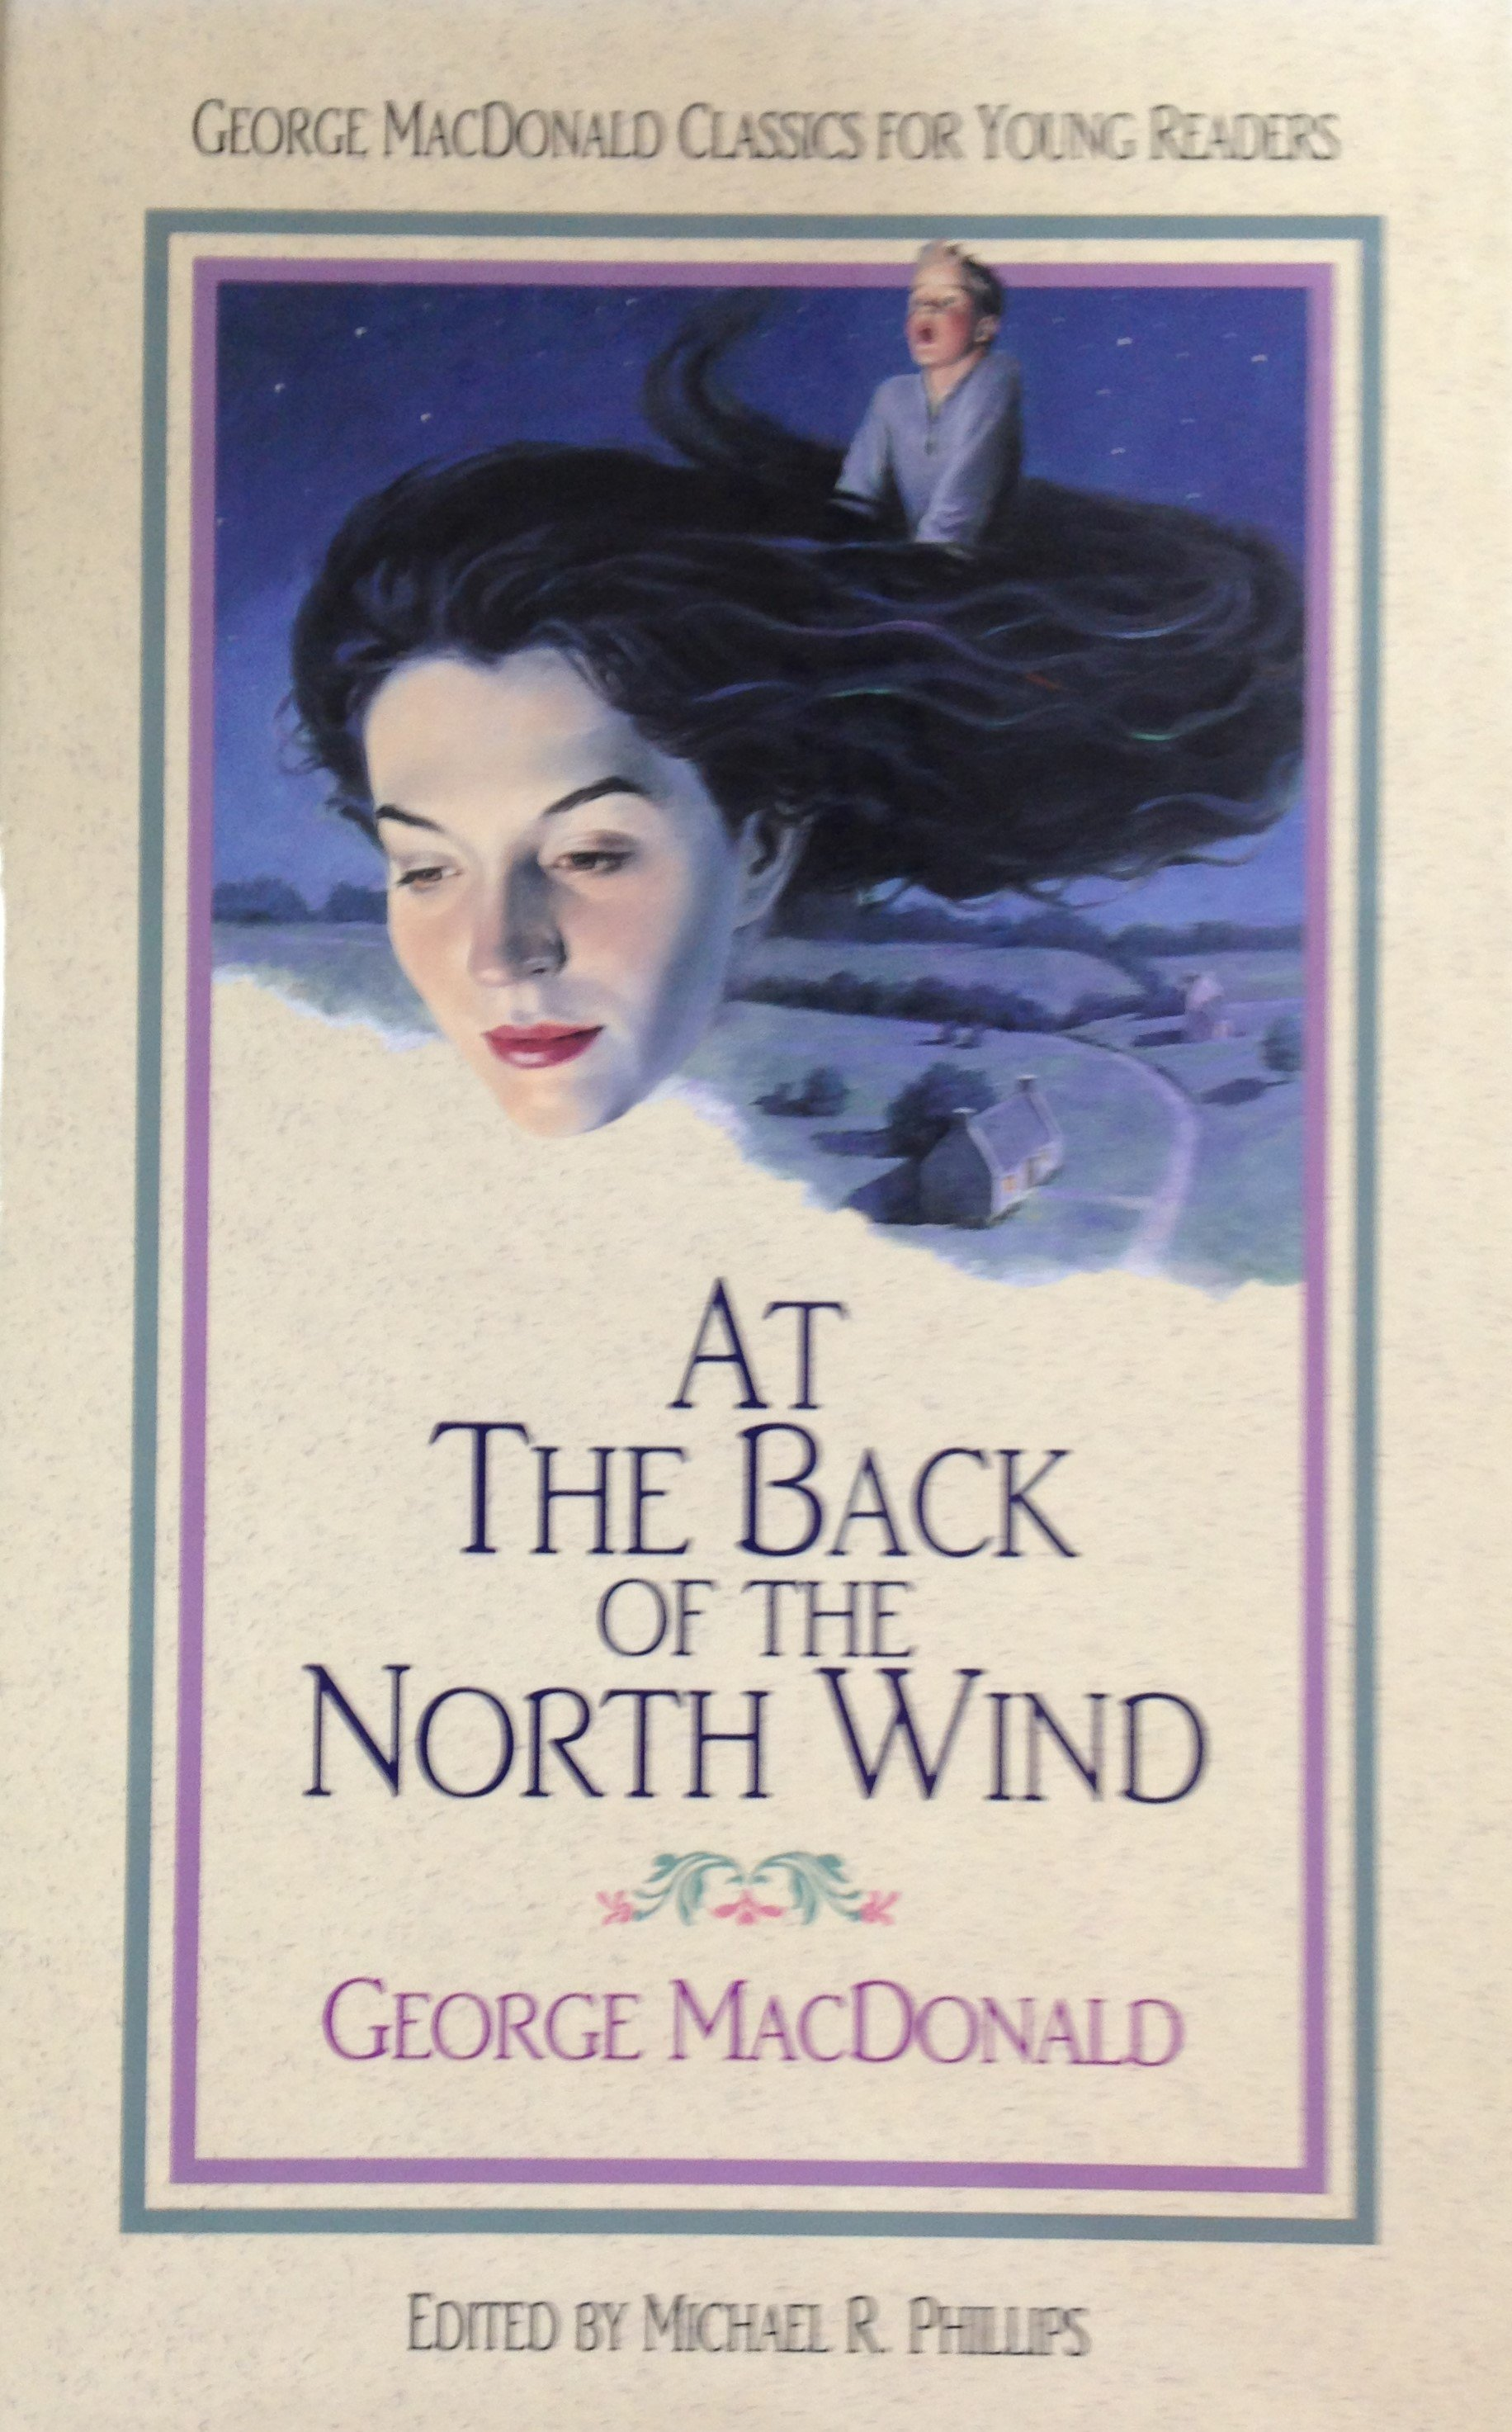 At the Back of the North Wind by George MacDonald 00114